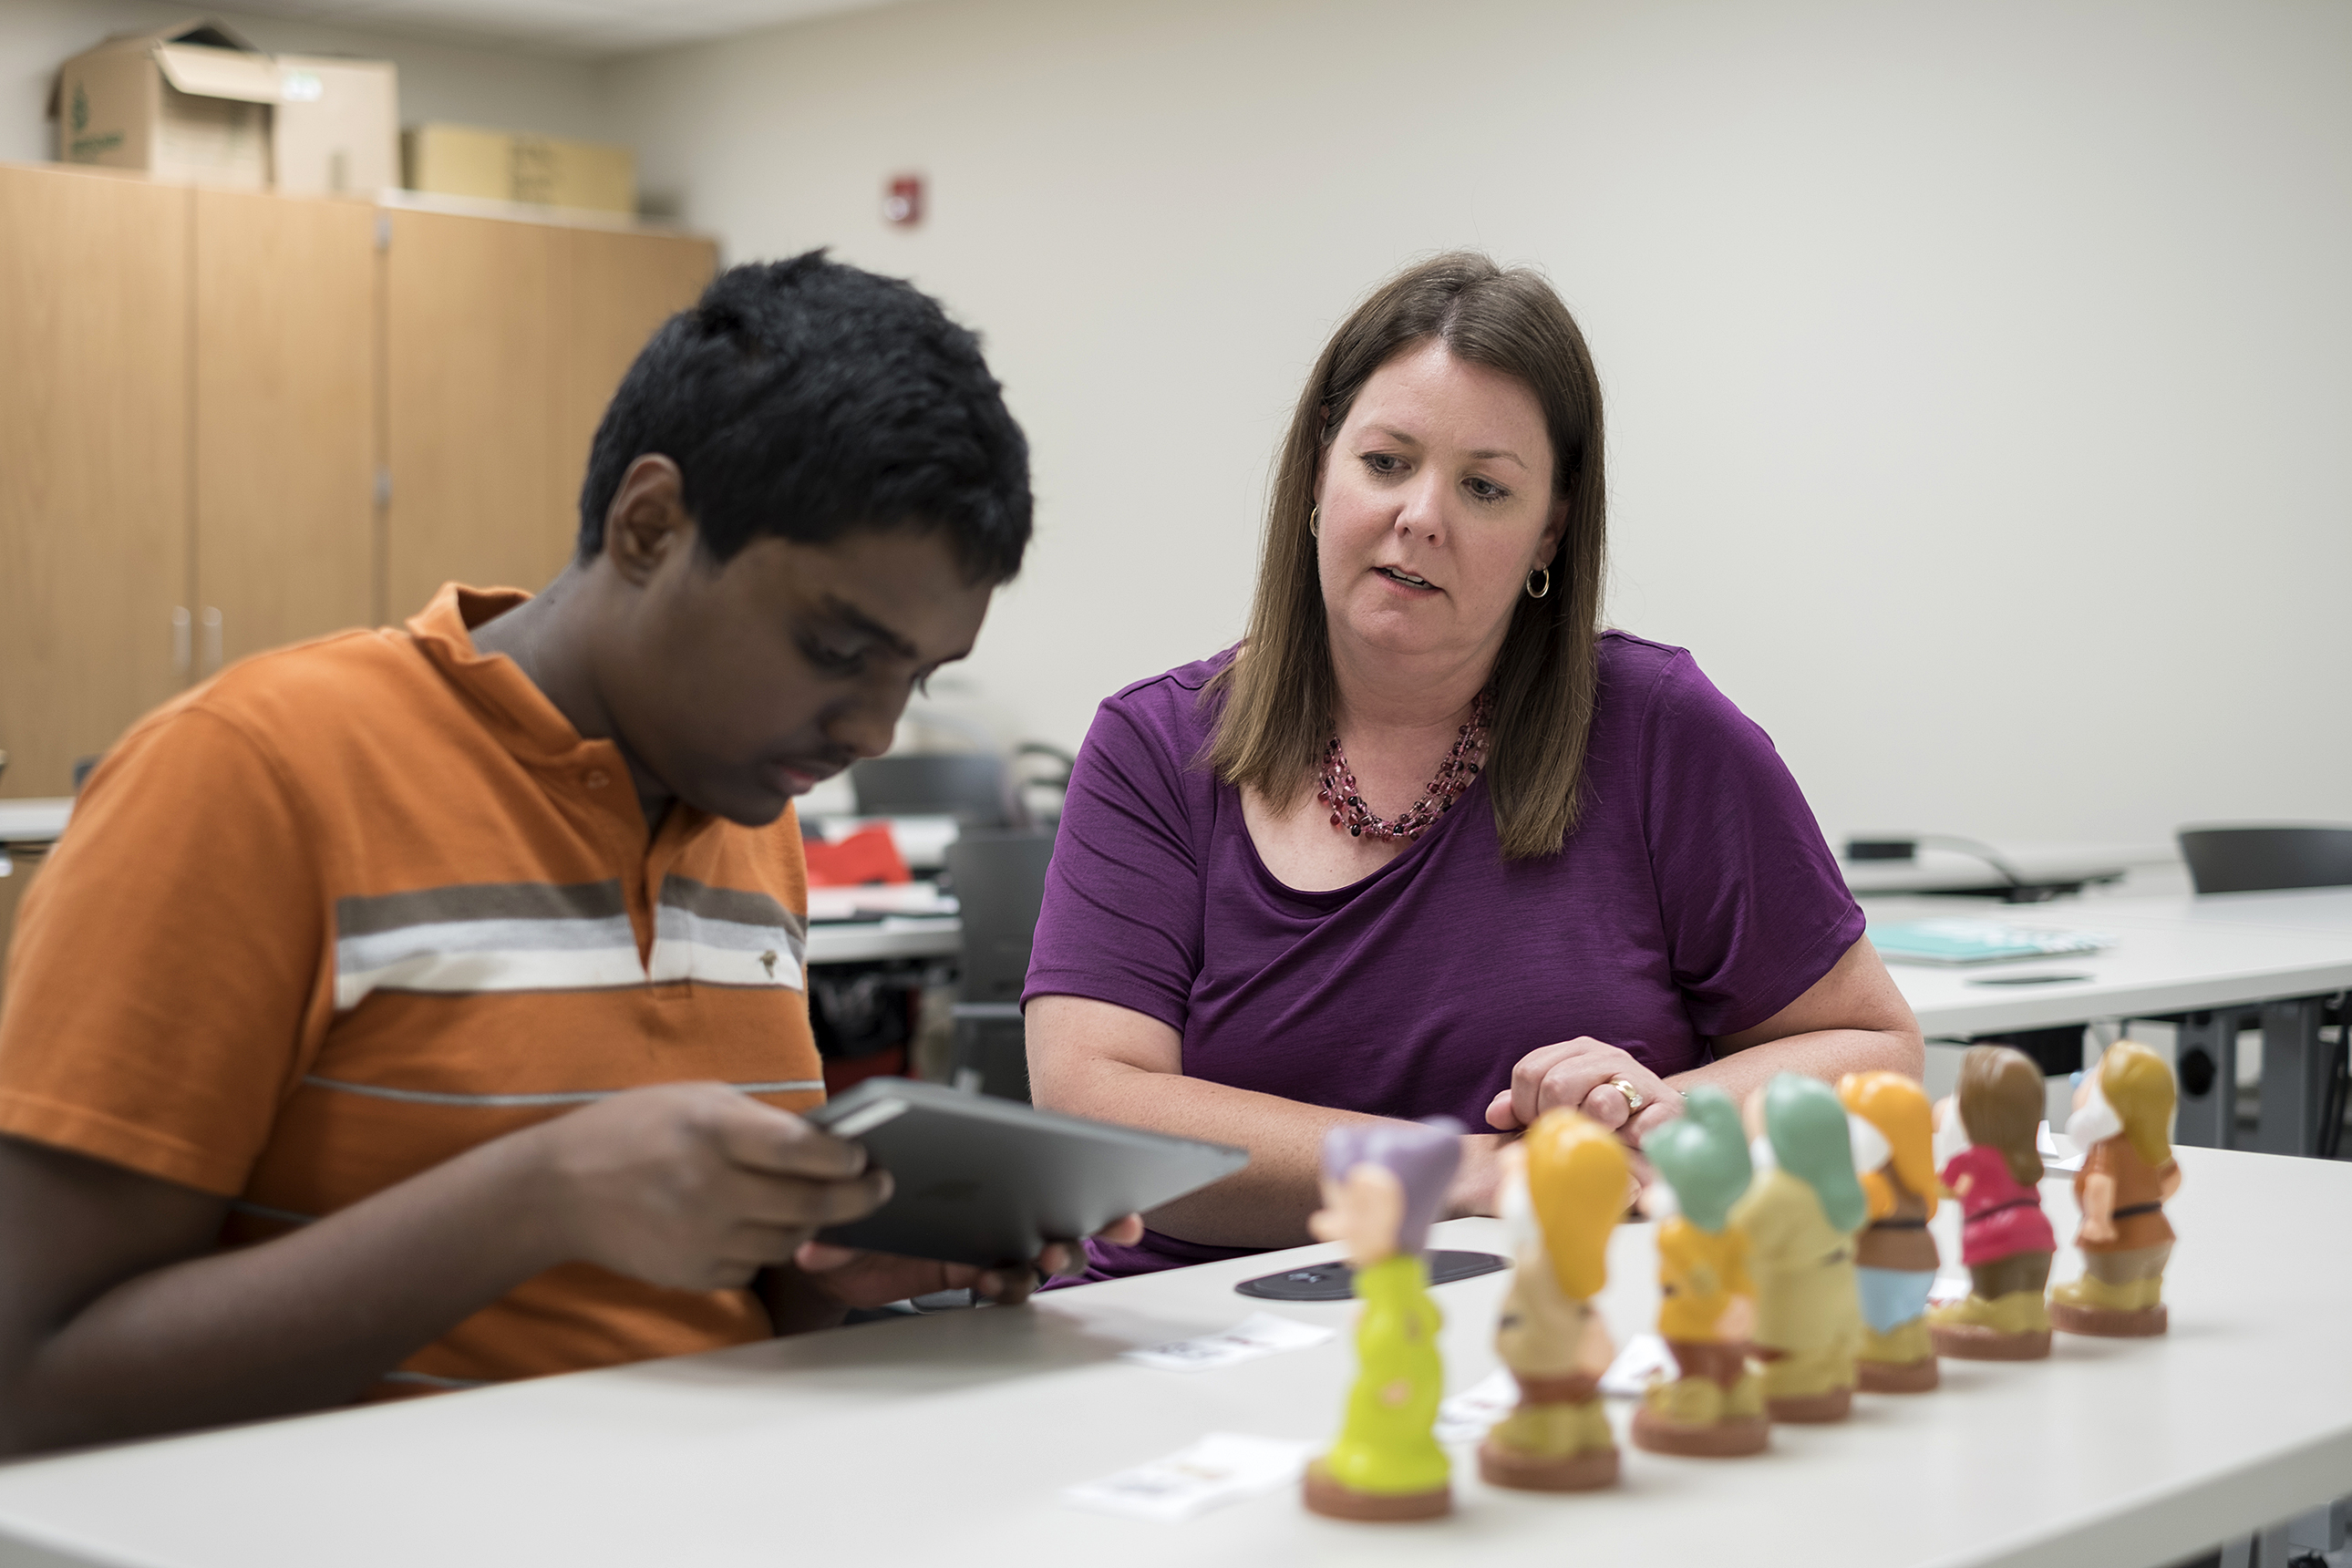 Purdue startup develops engaging interactive way for kids